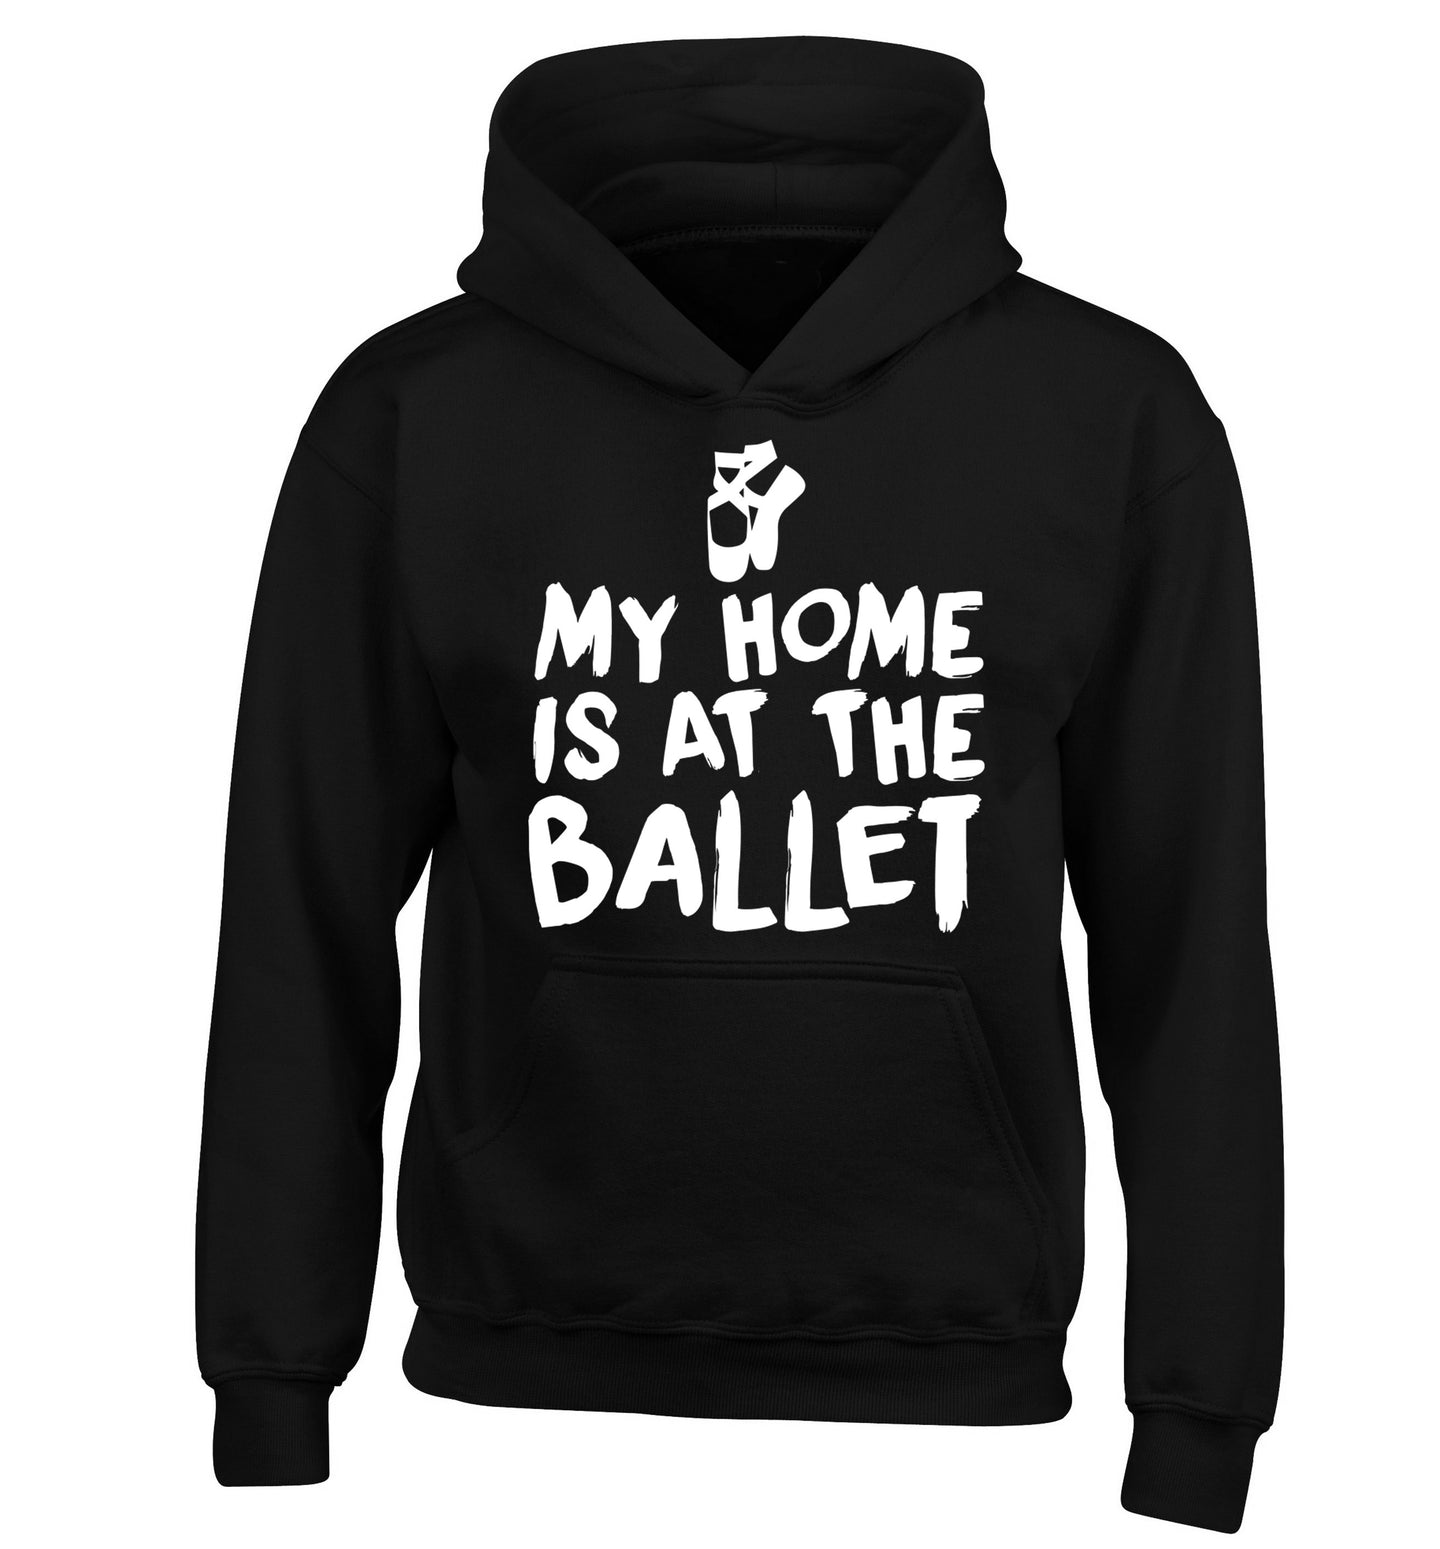 My home is at the ballet children's black hoodie 12-14 Years